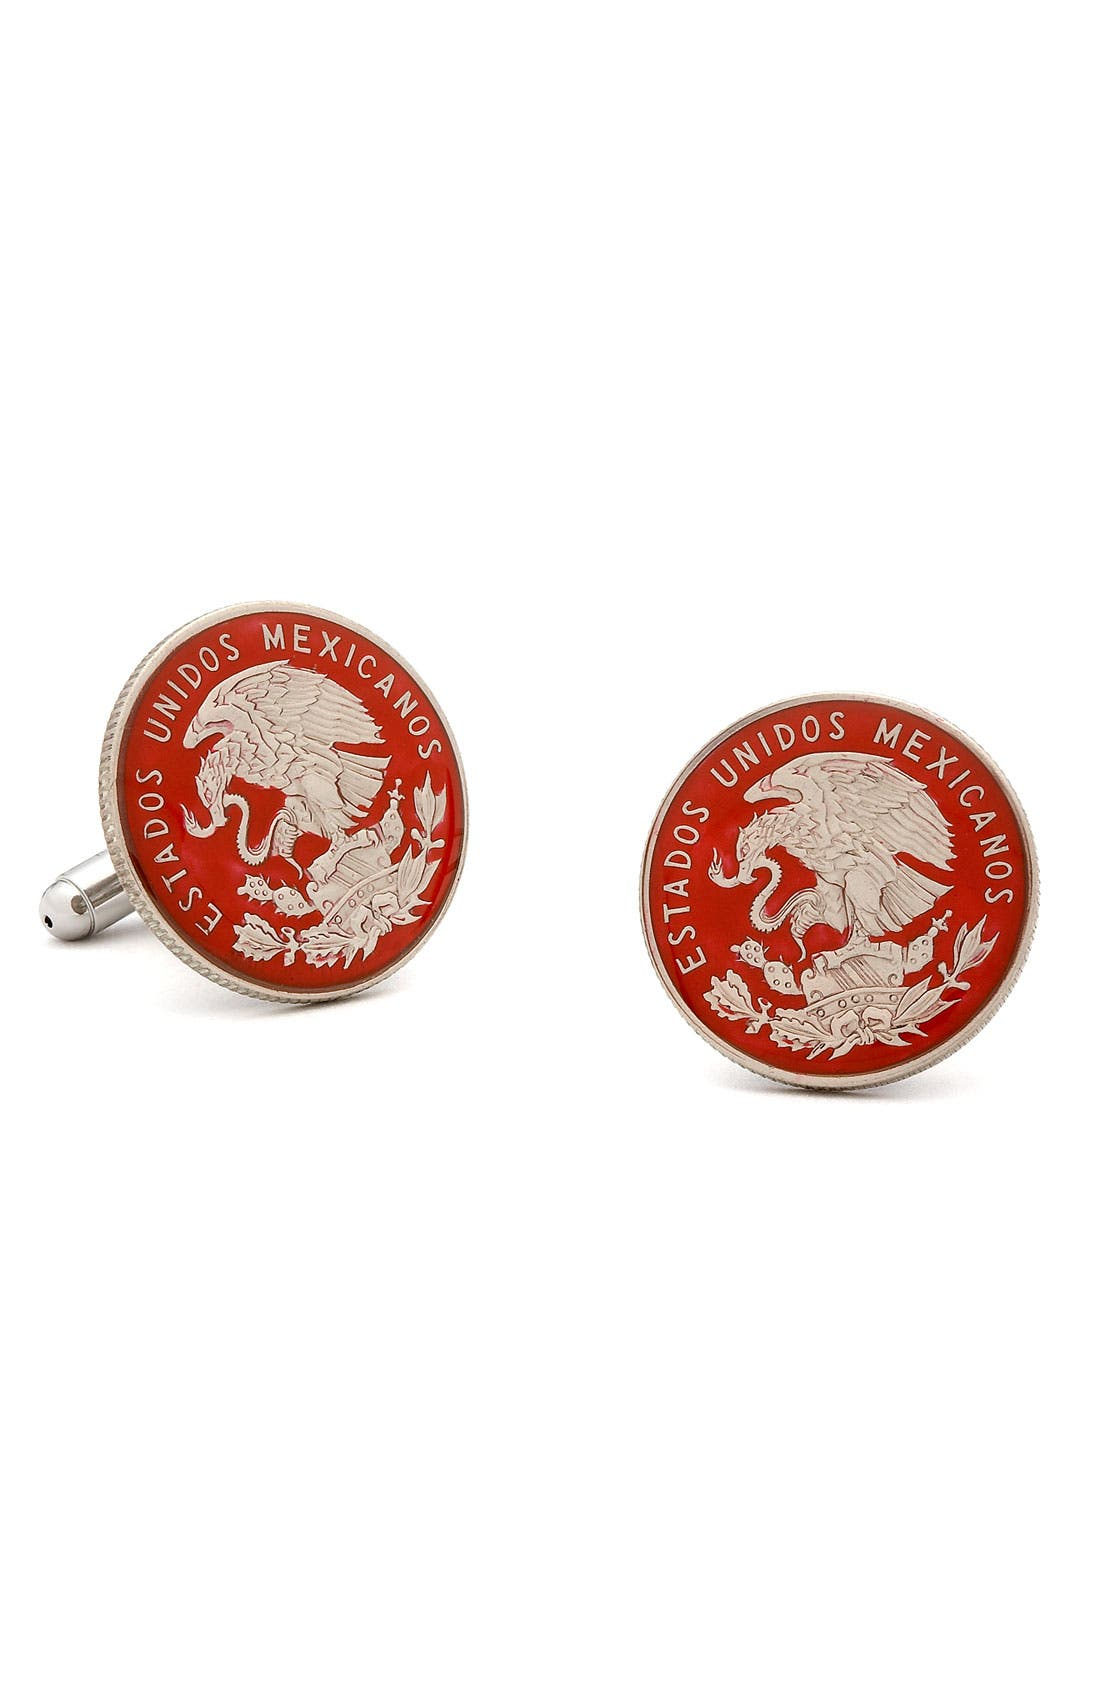 Main Image - Penny Black 40 Mexican Peso Cuff Links